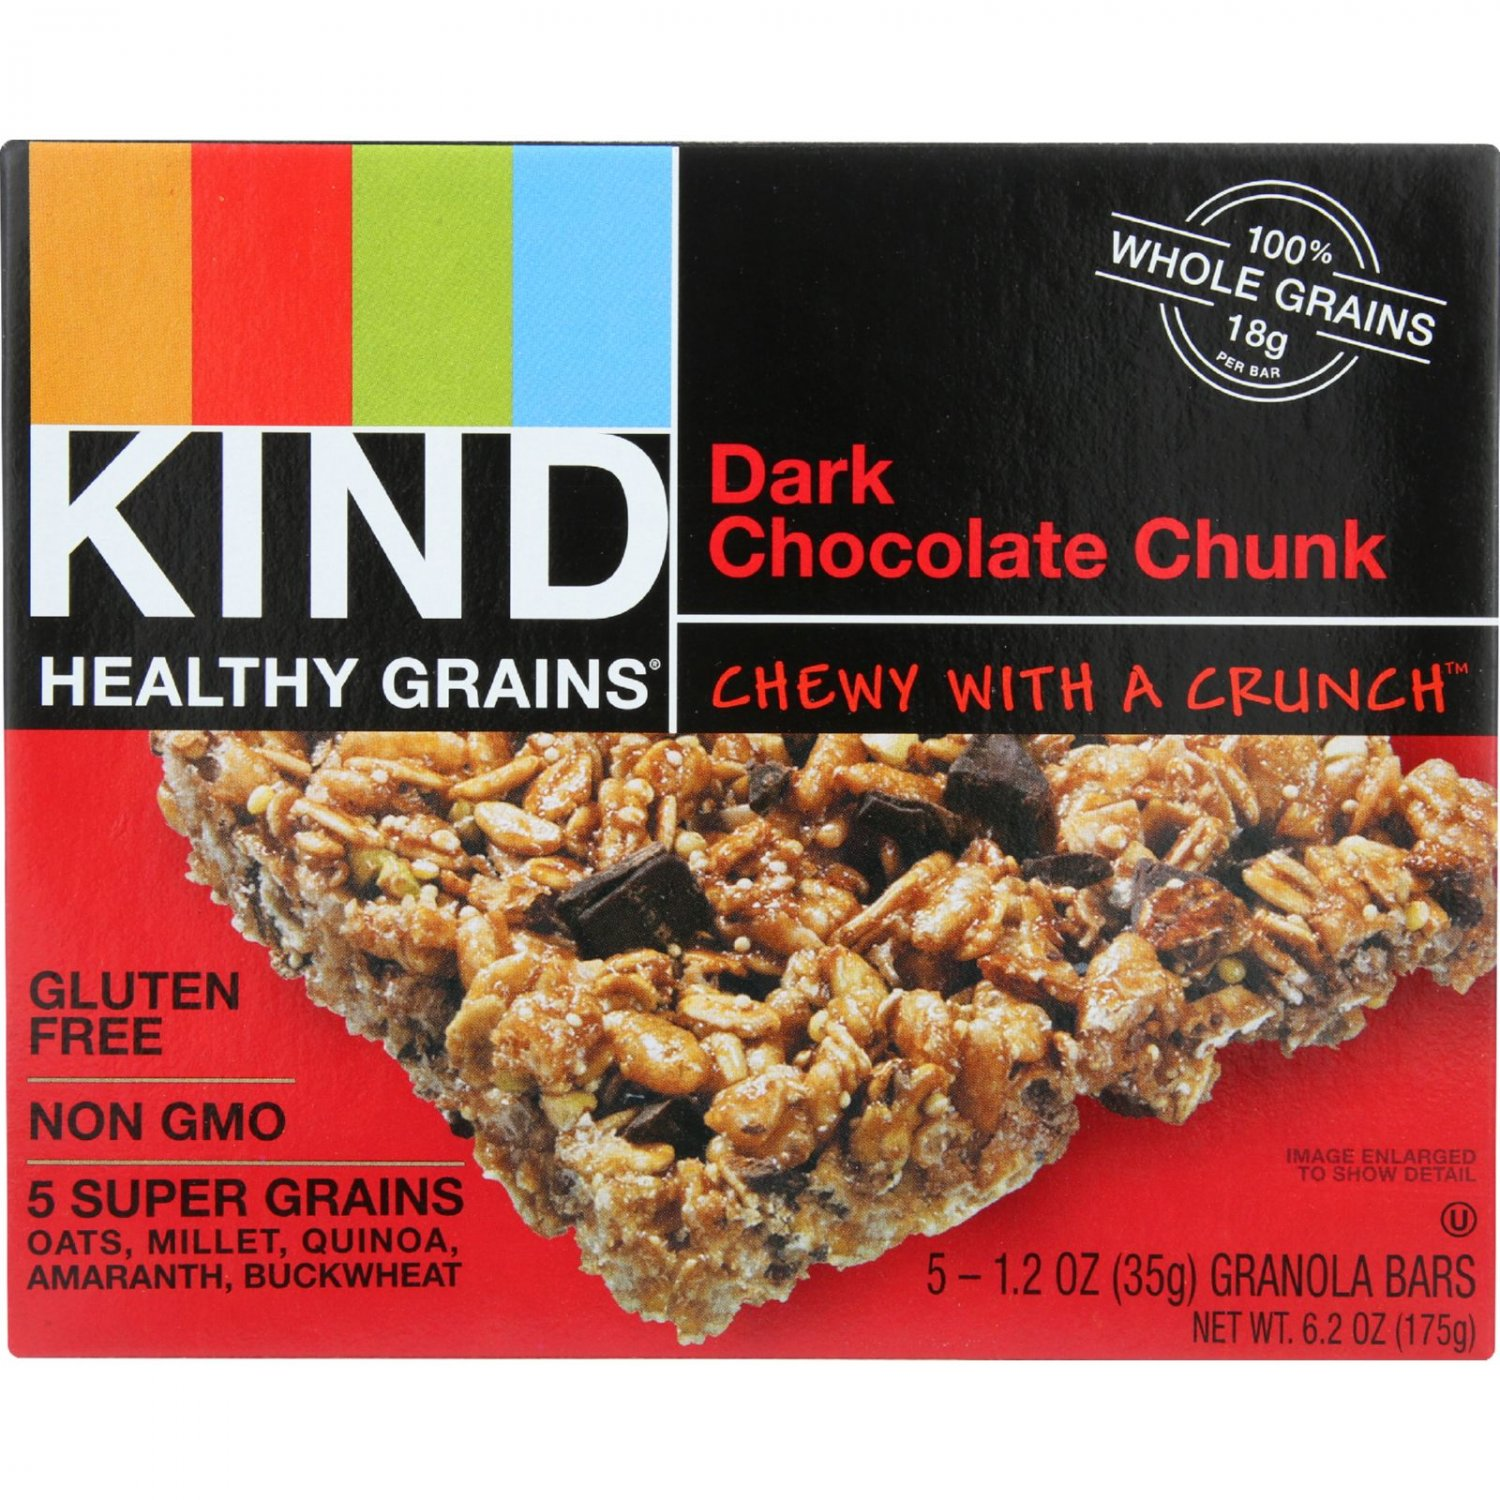 Kind Bar - Granola - Healthy Grains - Dark Chocolate Chunk - 5/1.2 oz - case of 8